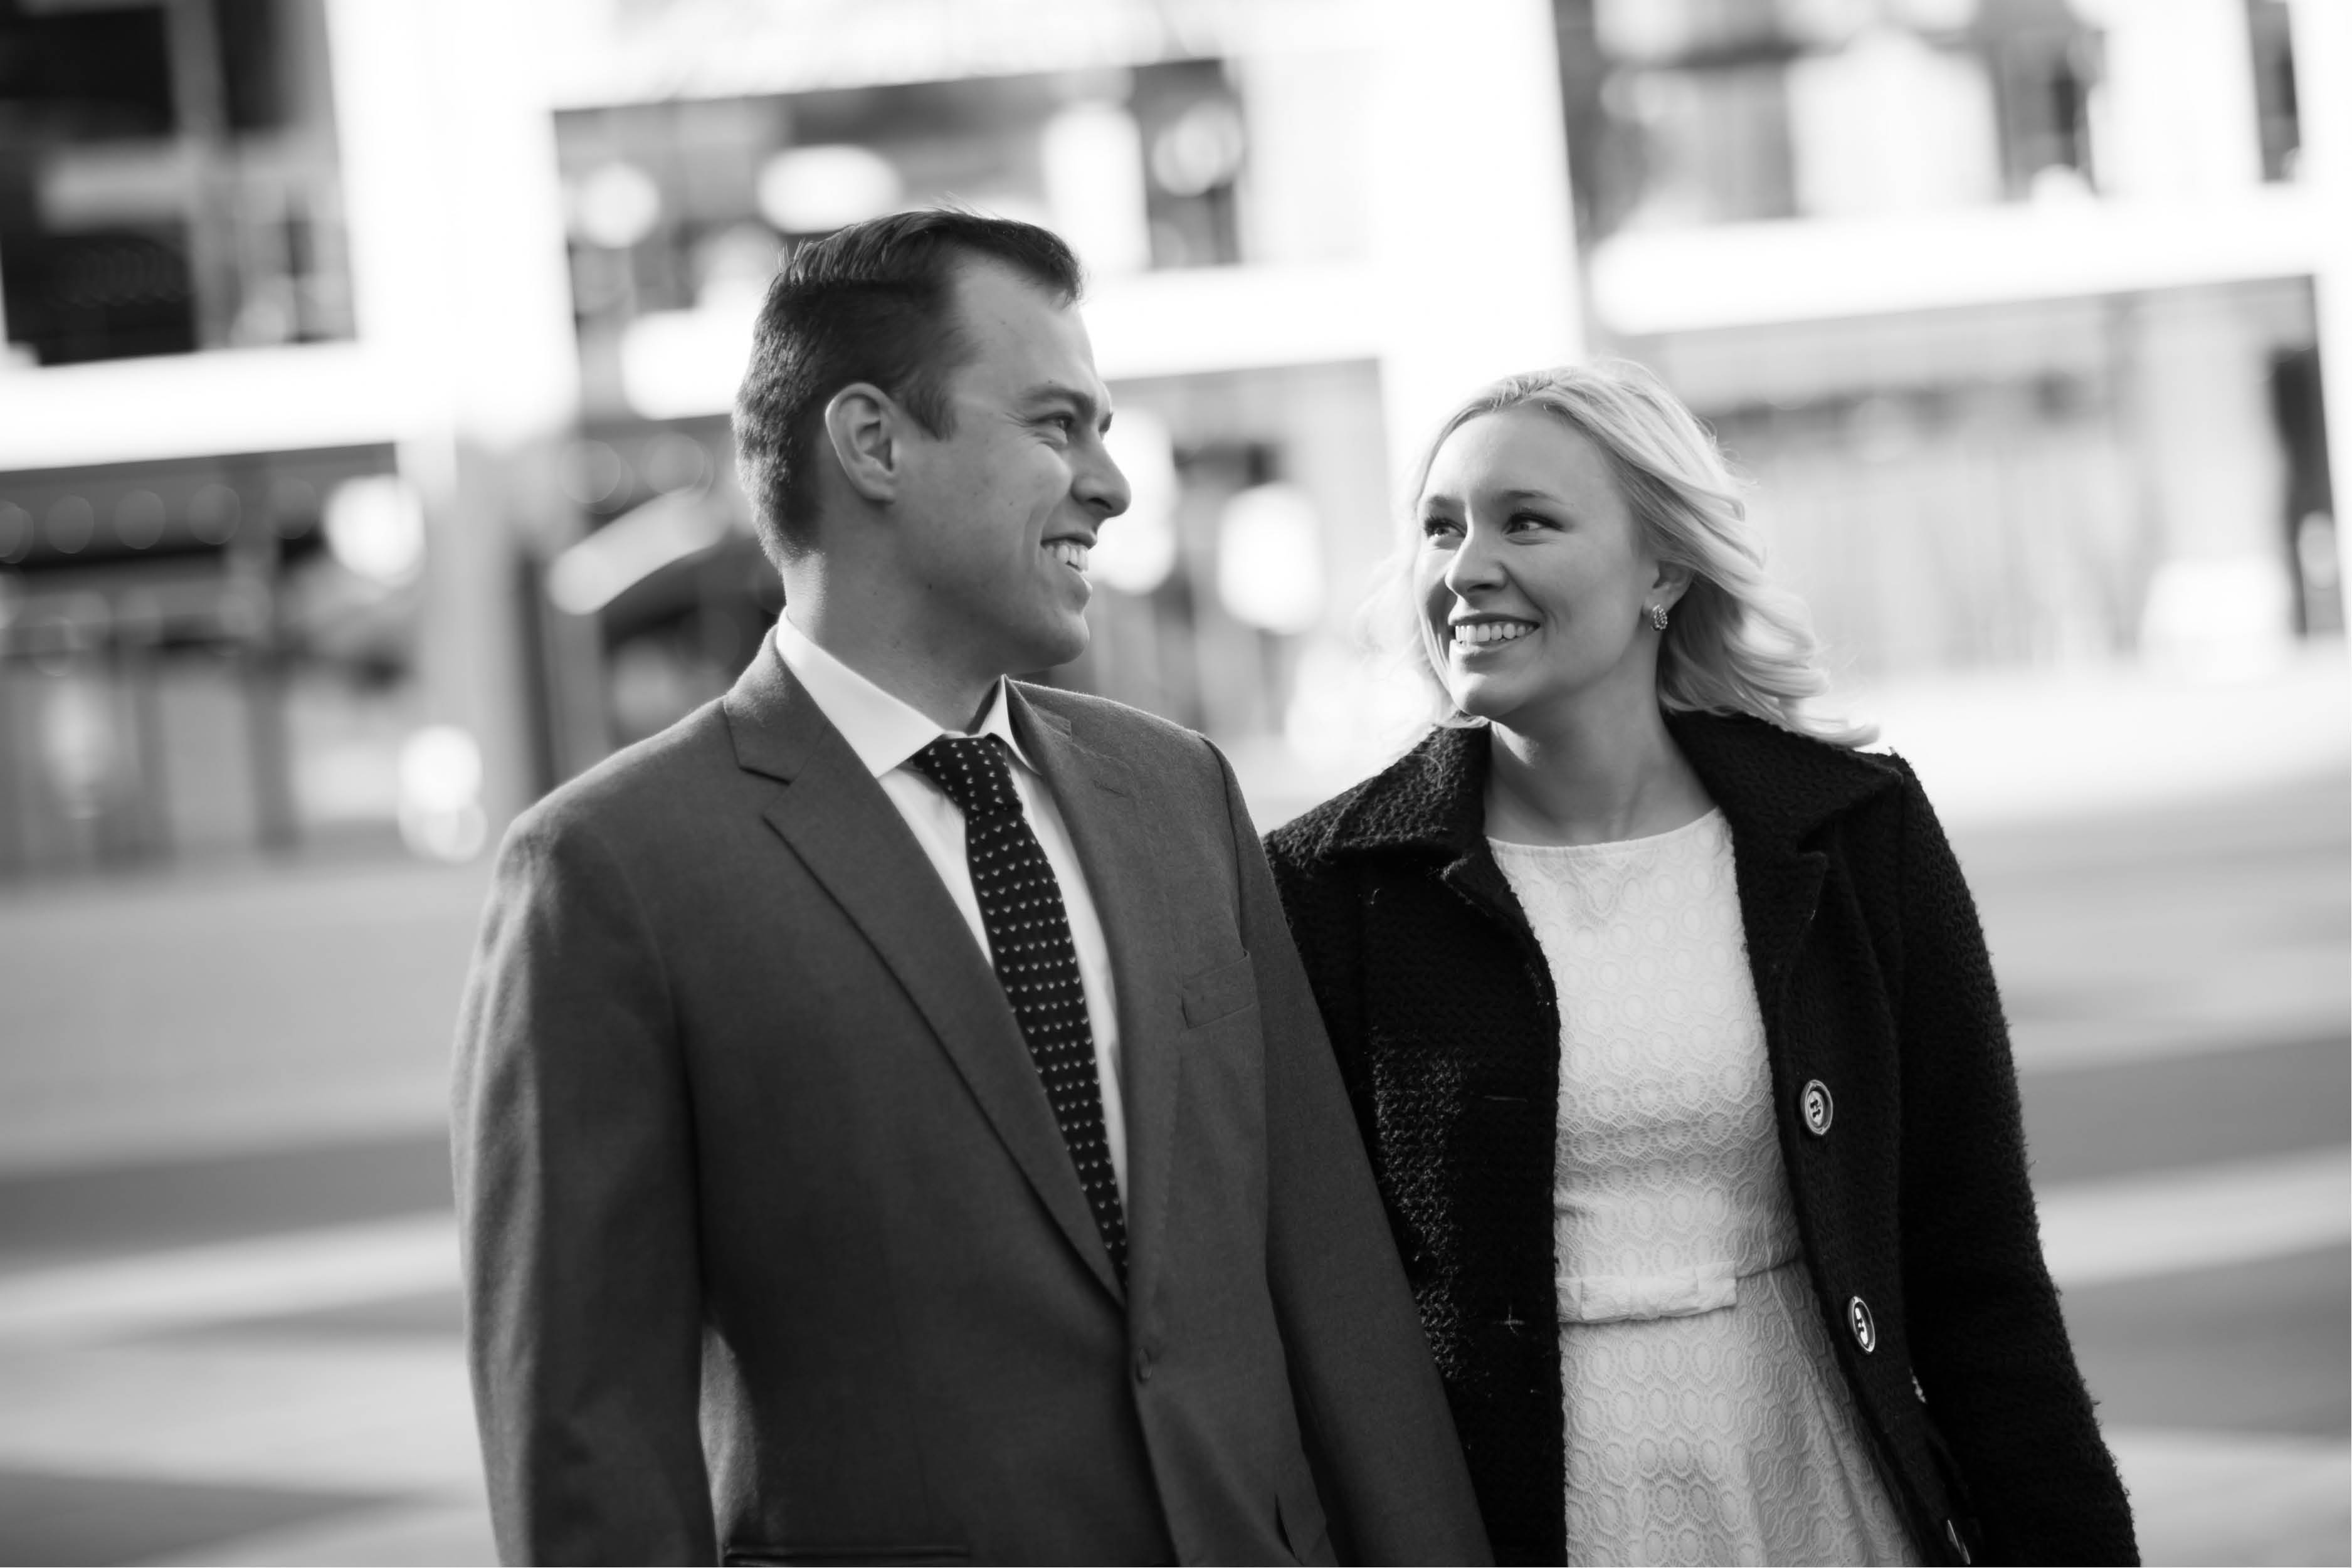 Emma_cleary_photography Lincoln center engagement shoot4